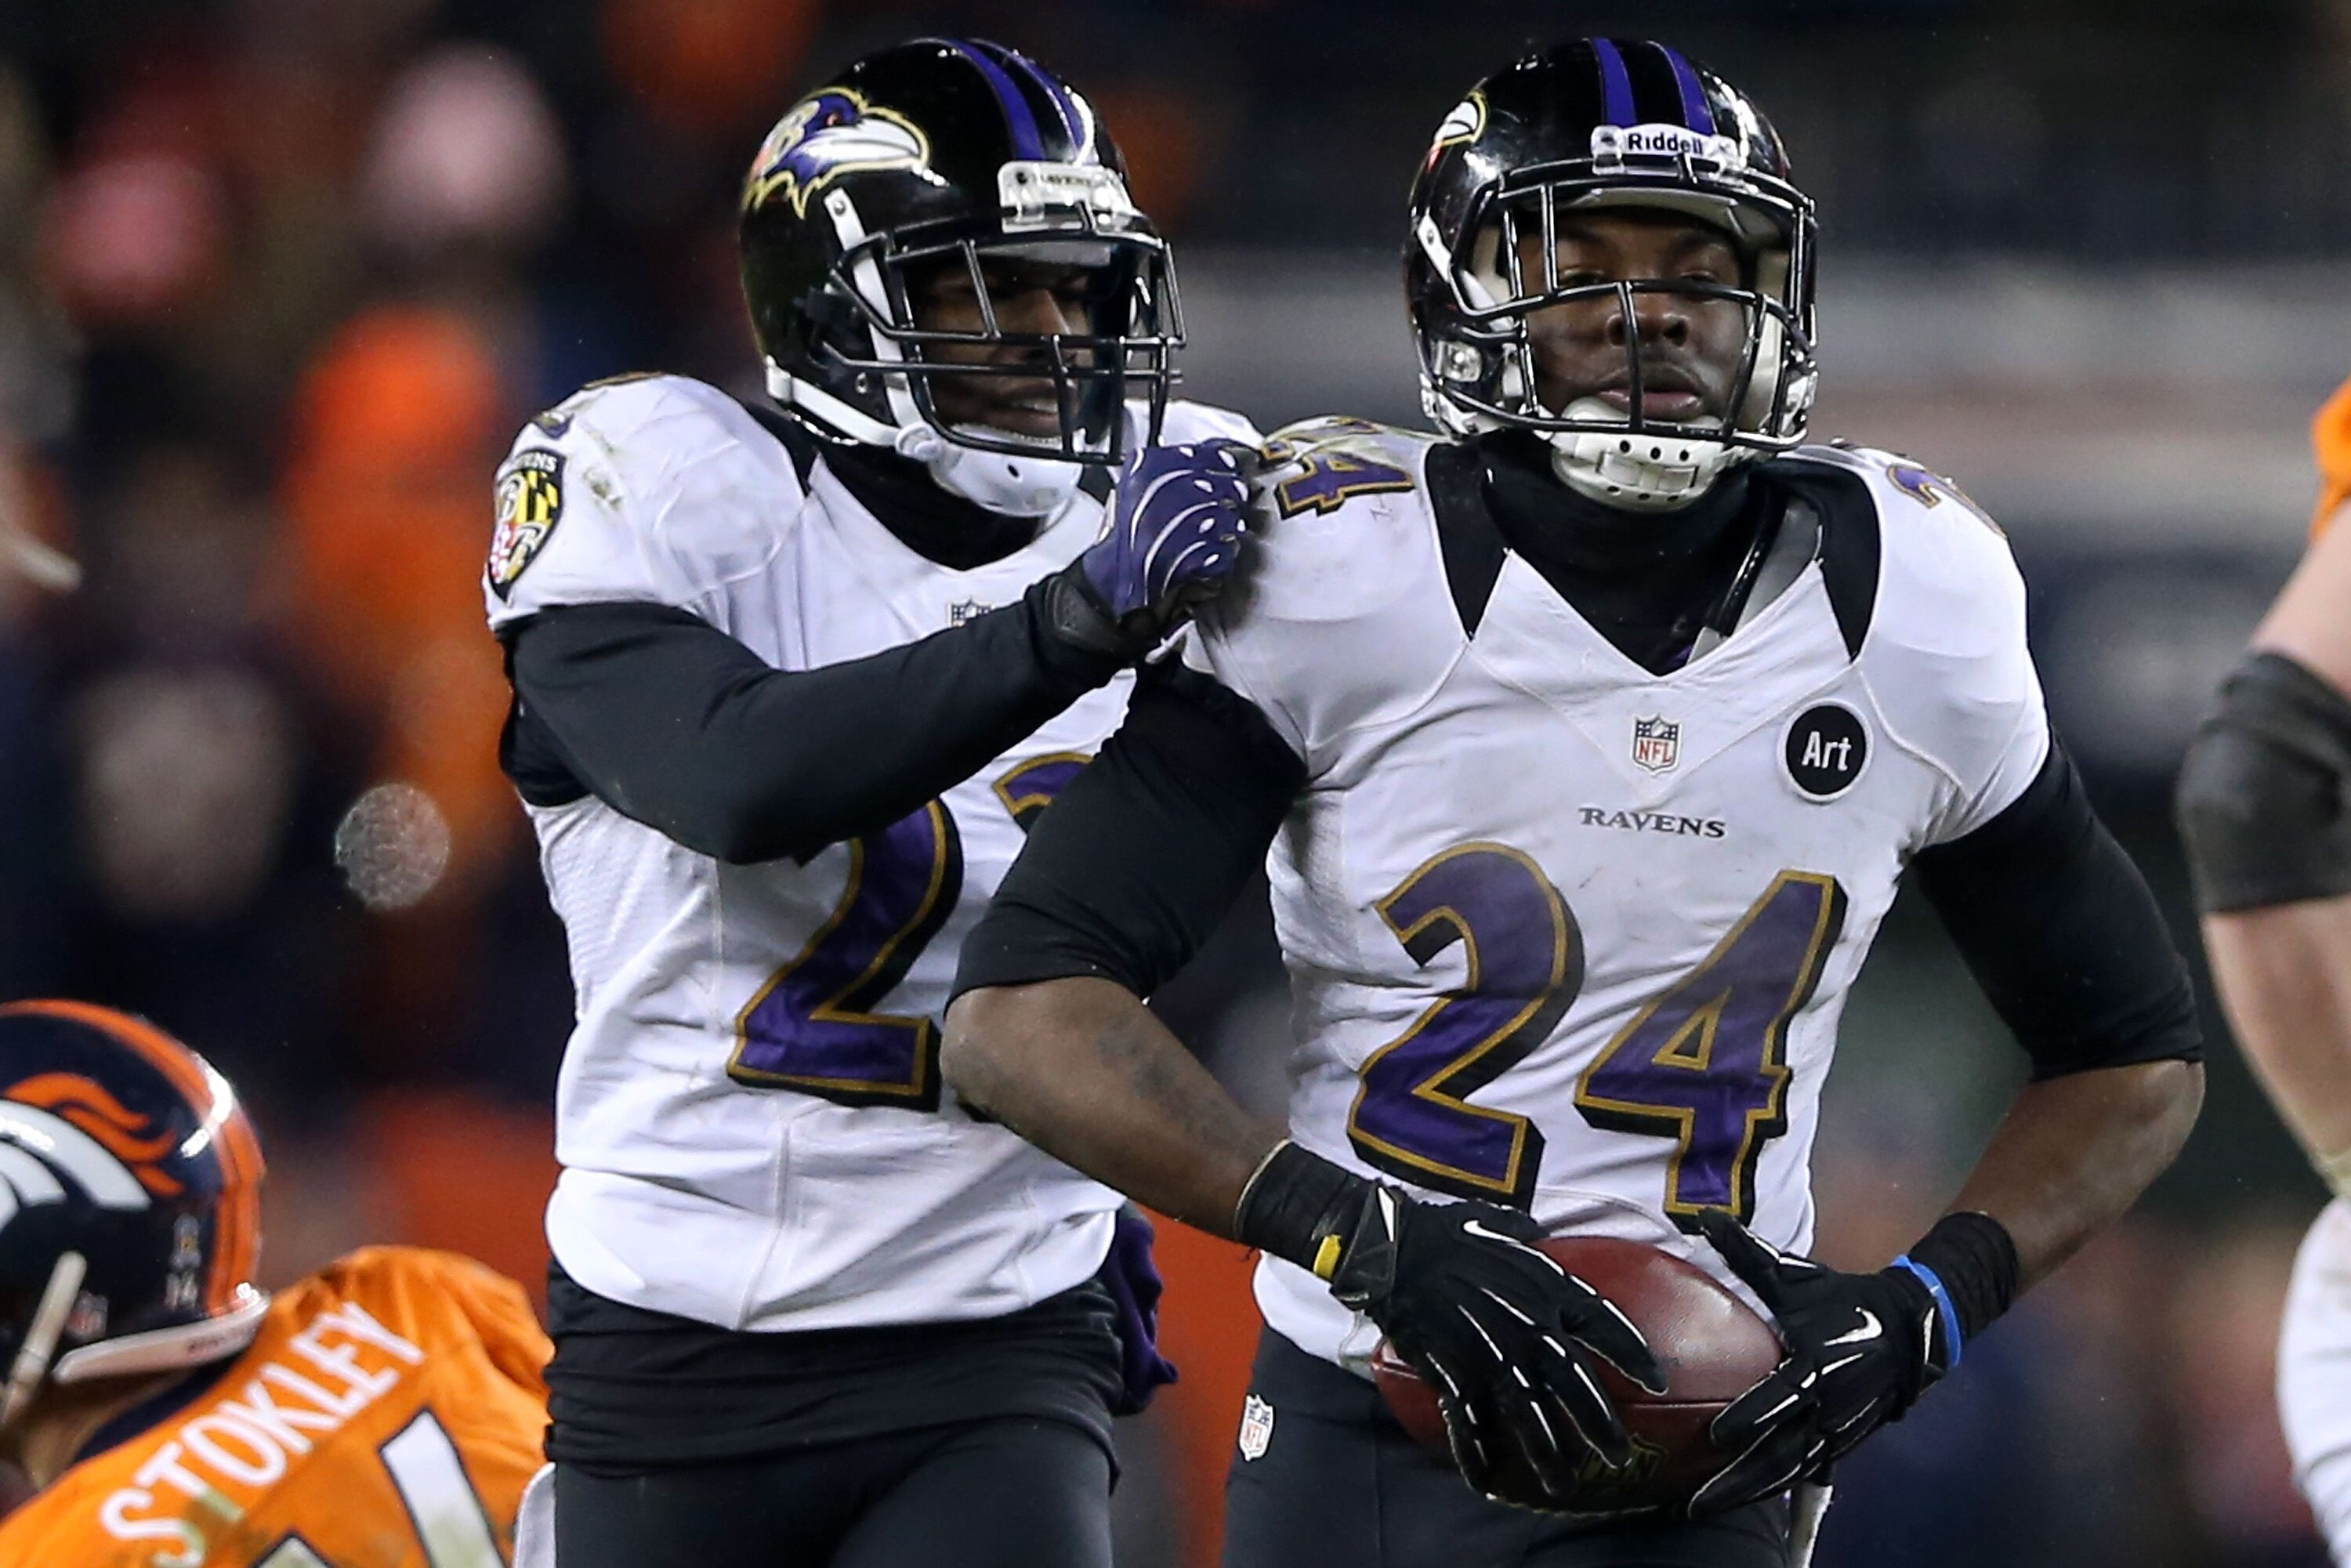 159368148-divisional-playoffs-baltimore-ravens-v-denver-broncos.jpg